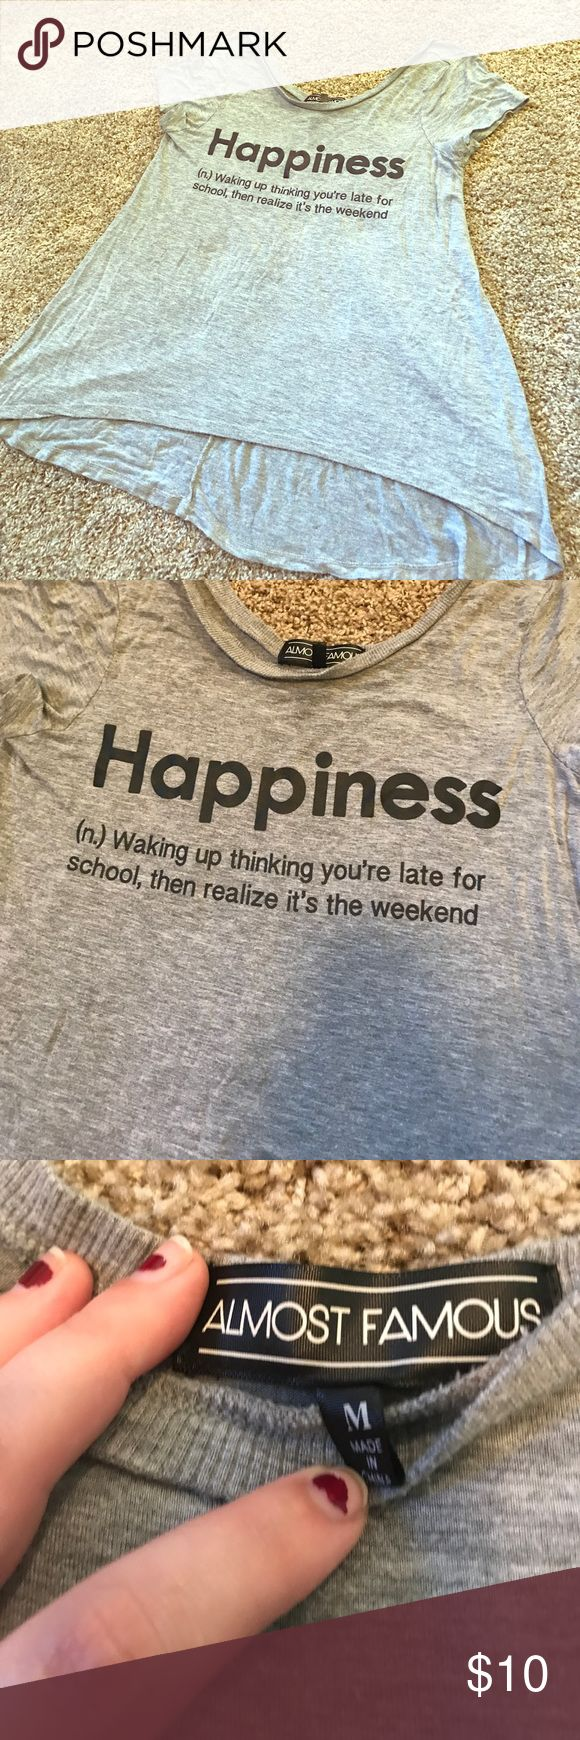 """Gray Definition of Happiness T-shirt Super soft and comfy t-shirt from Almost Famous. It says: """"Happiness; (n.) Waking up thinking you're late for school, then realize it's the weekend."""" I'm not in school anymore so this doesn't really work for me. Kitten approved 😽 Almost Famous Tops Tees - Short Sleeve"""